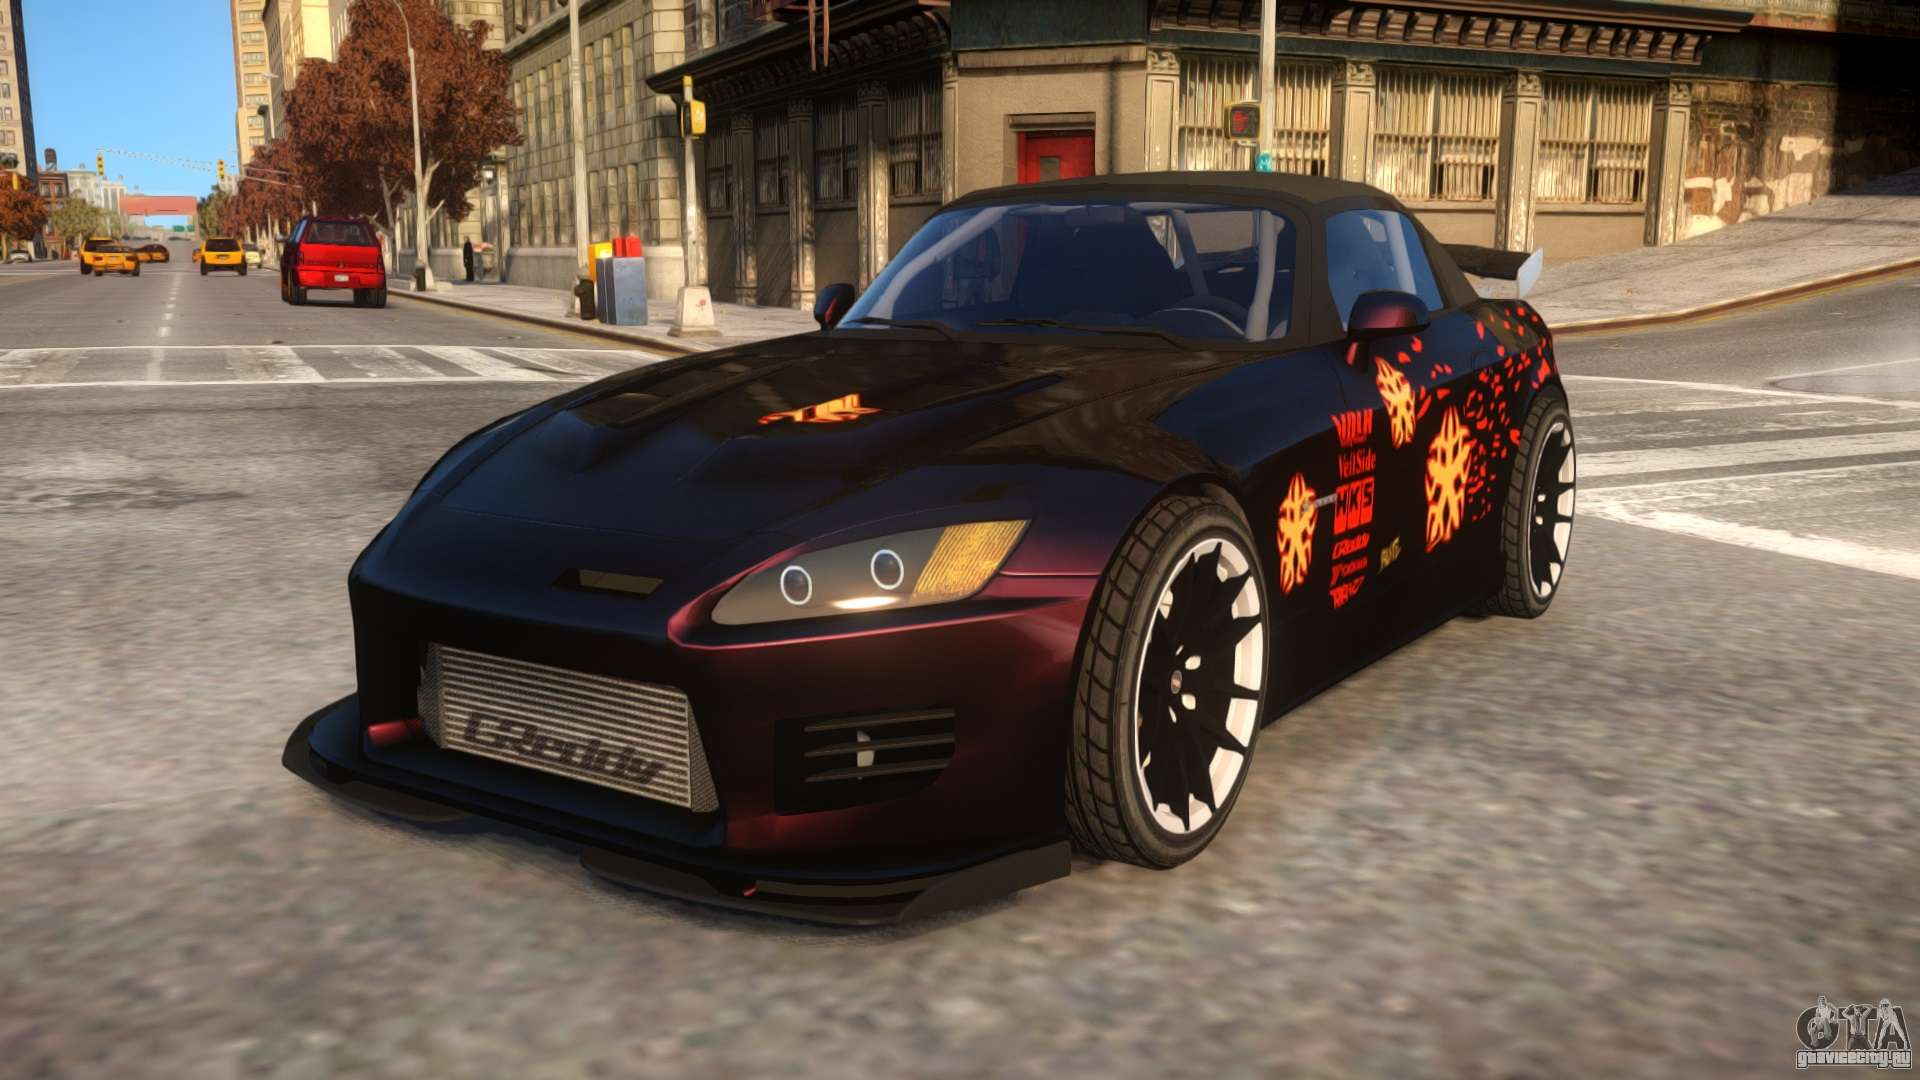 Fast And Furious 1 Honda S2000 Movie Car для GTA 4